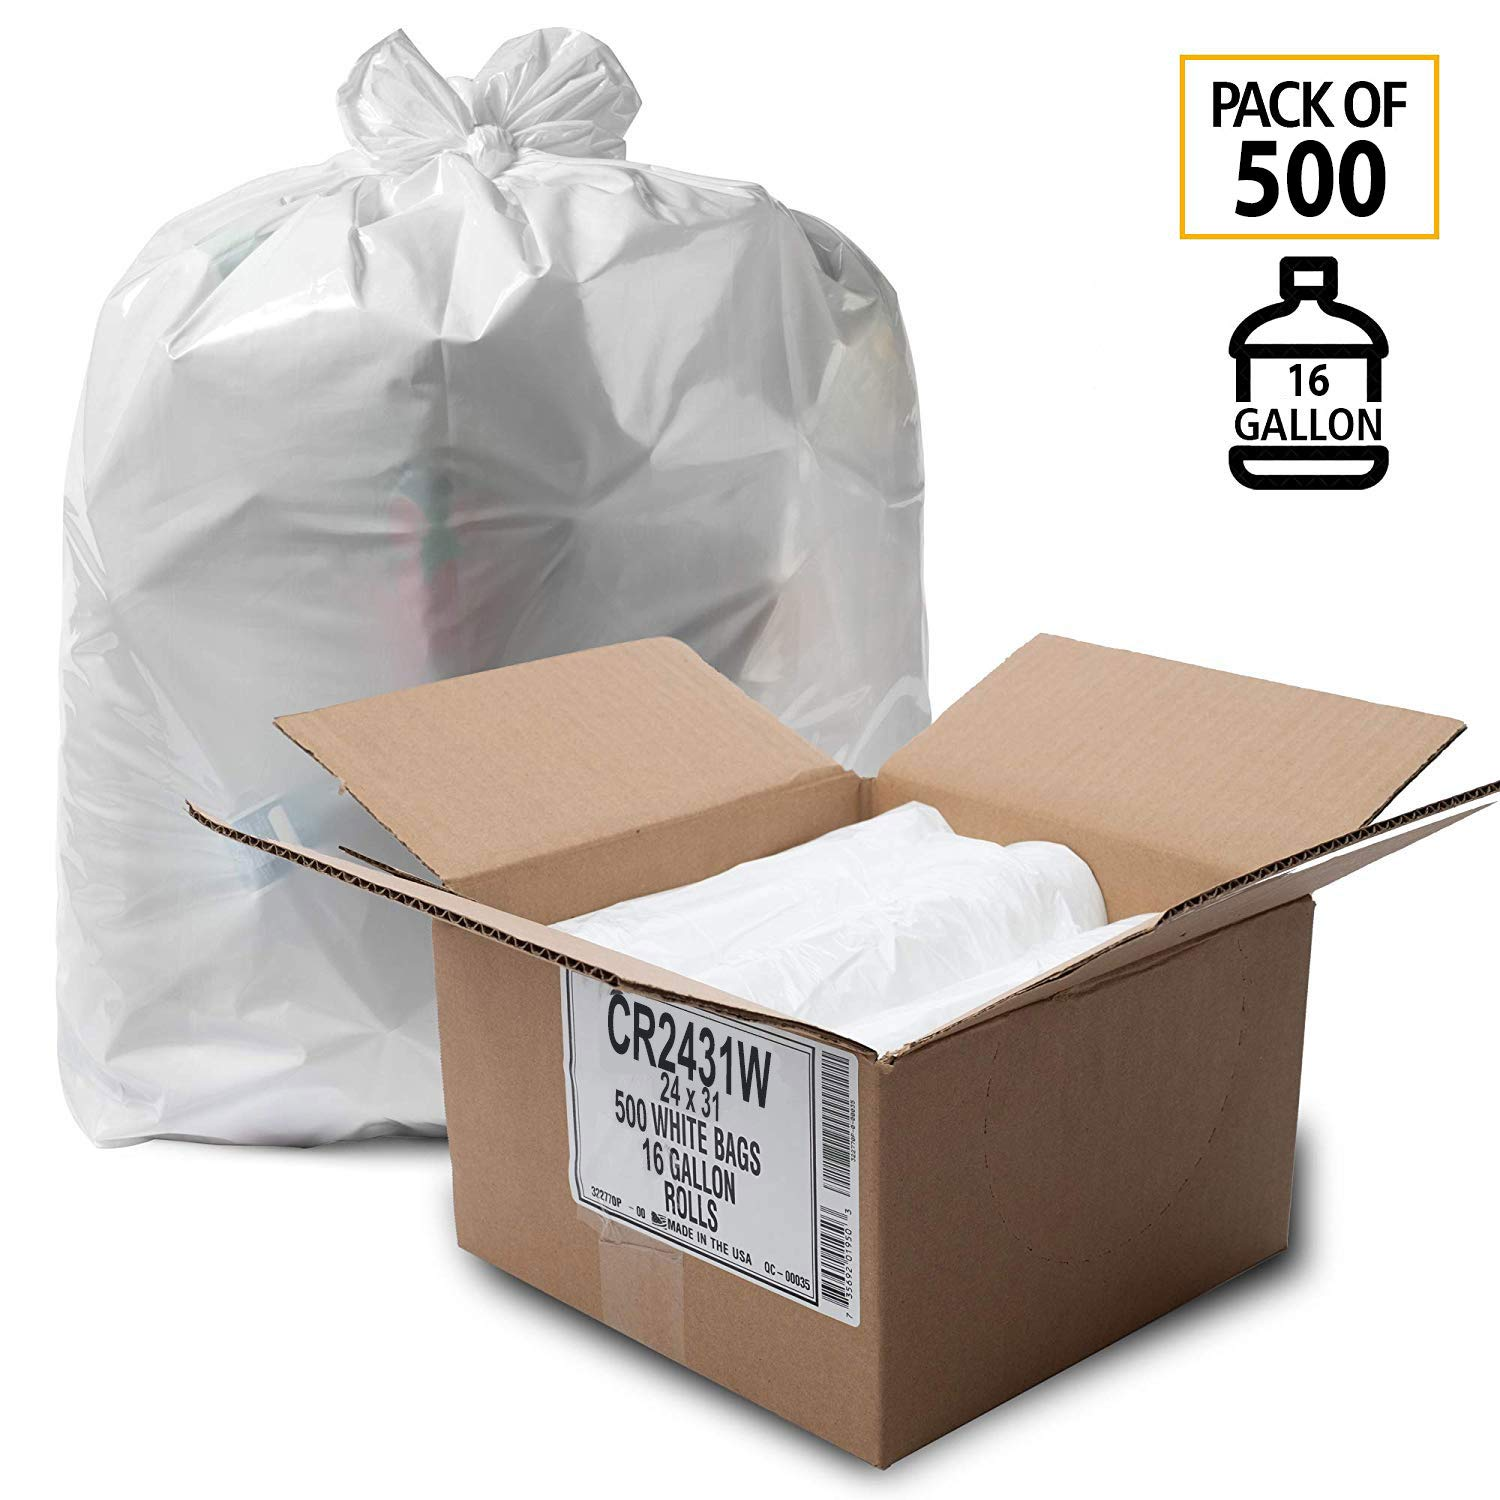 equiv - Source Reduction Series Value High Density 16 Micron Gauge Office - Intended for Home Paper Bathroom 2 Sets Aluf Plastics 33 Gallon Trash Bags - Commercial 250 Pack